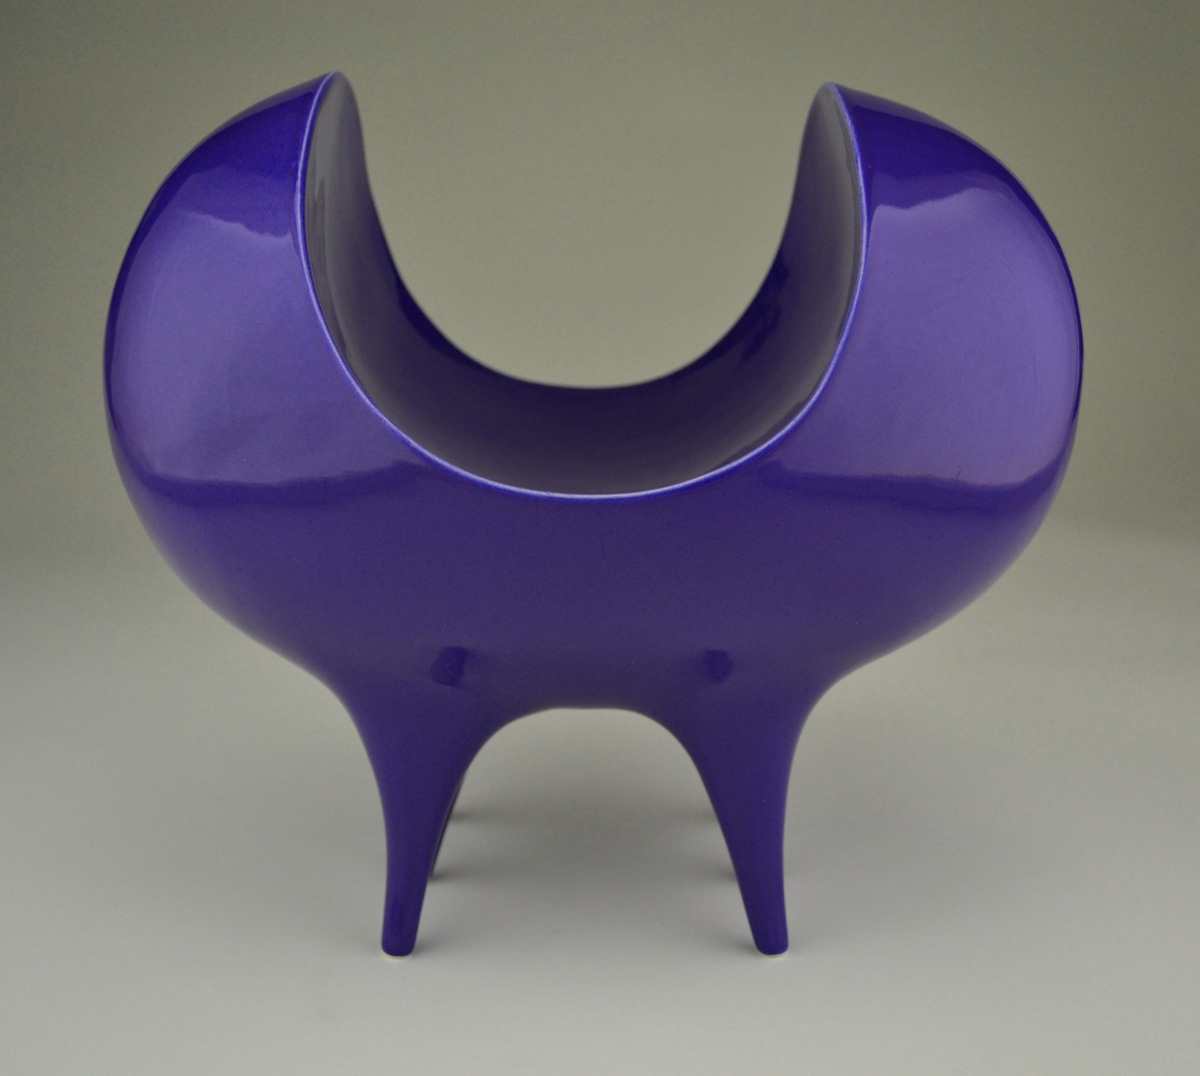 Blue Bite Bowl by Eric Boos at White Bird Gallery